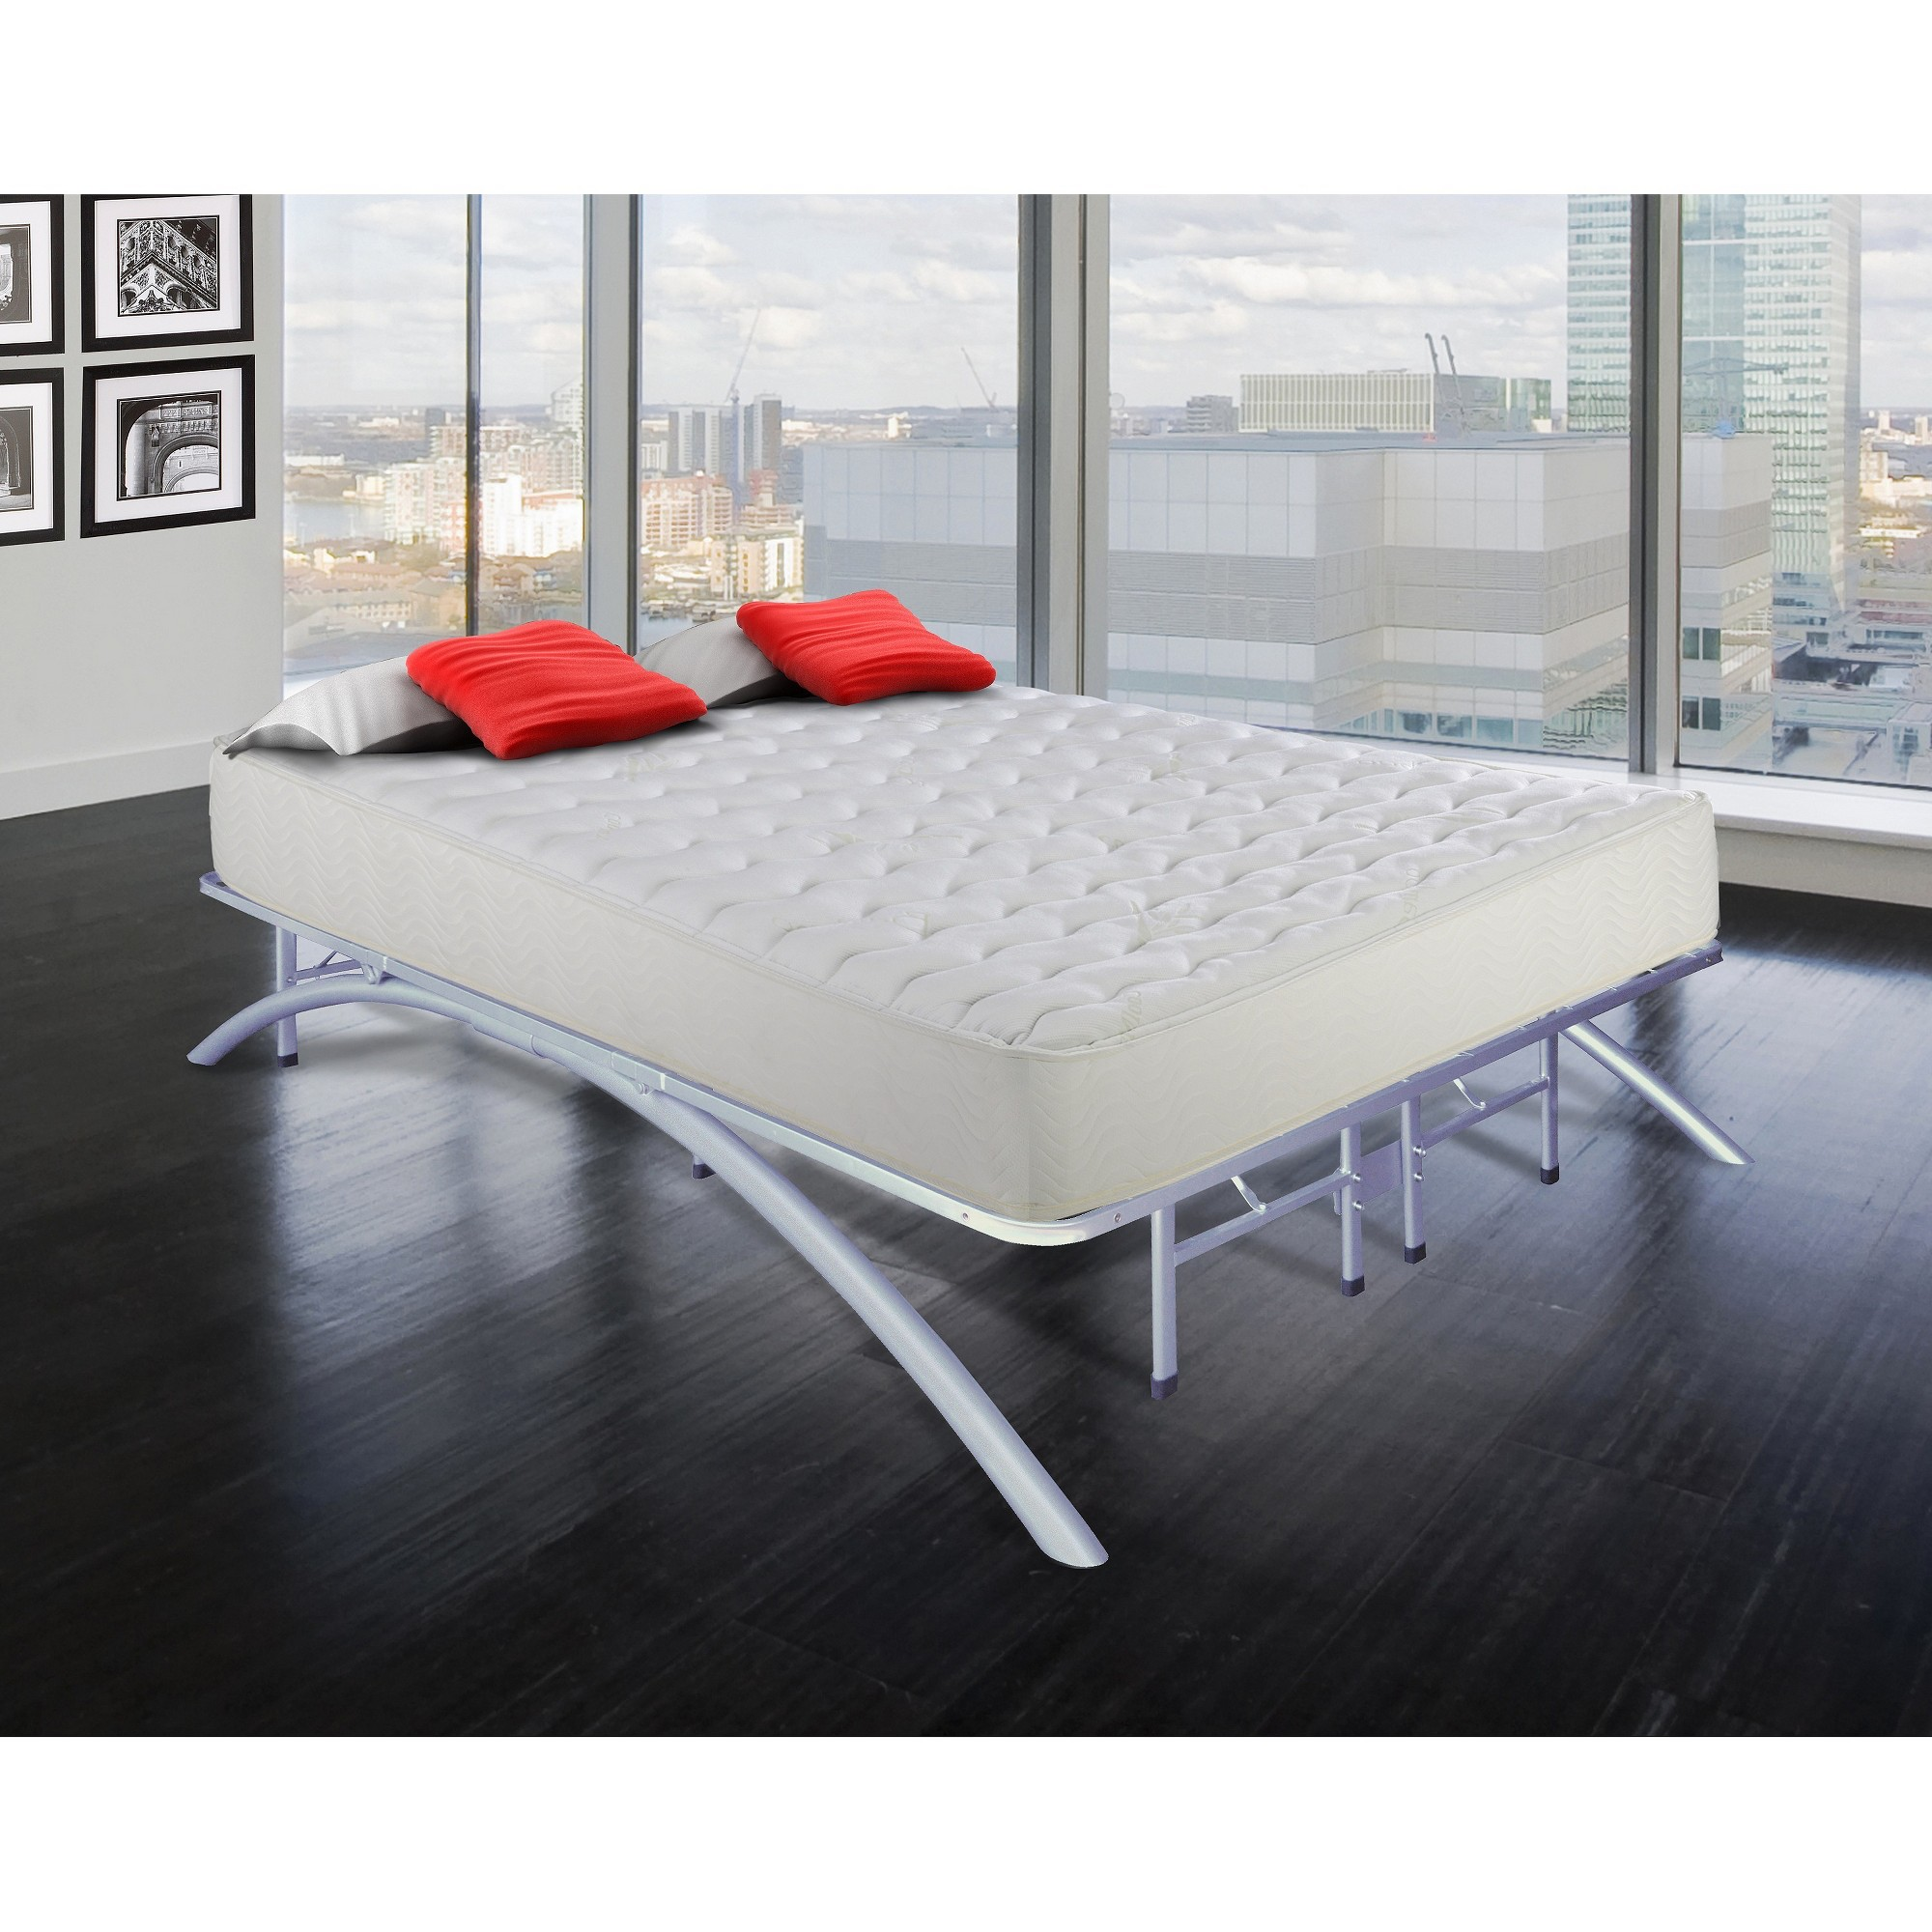 Arch Support Metal Platform Bed Frame (Twin)  Eco Dream,